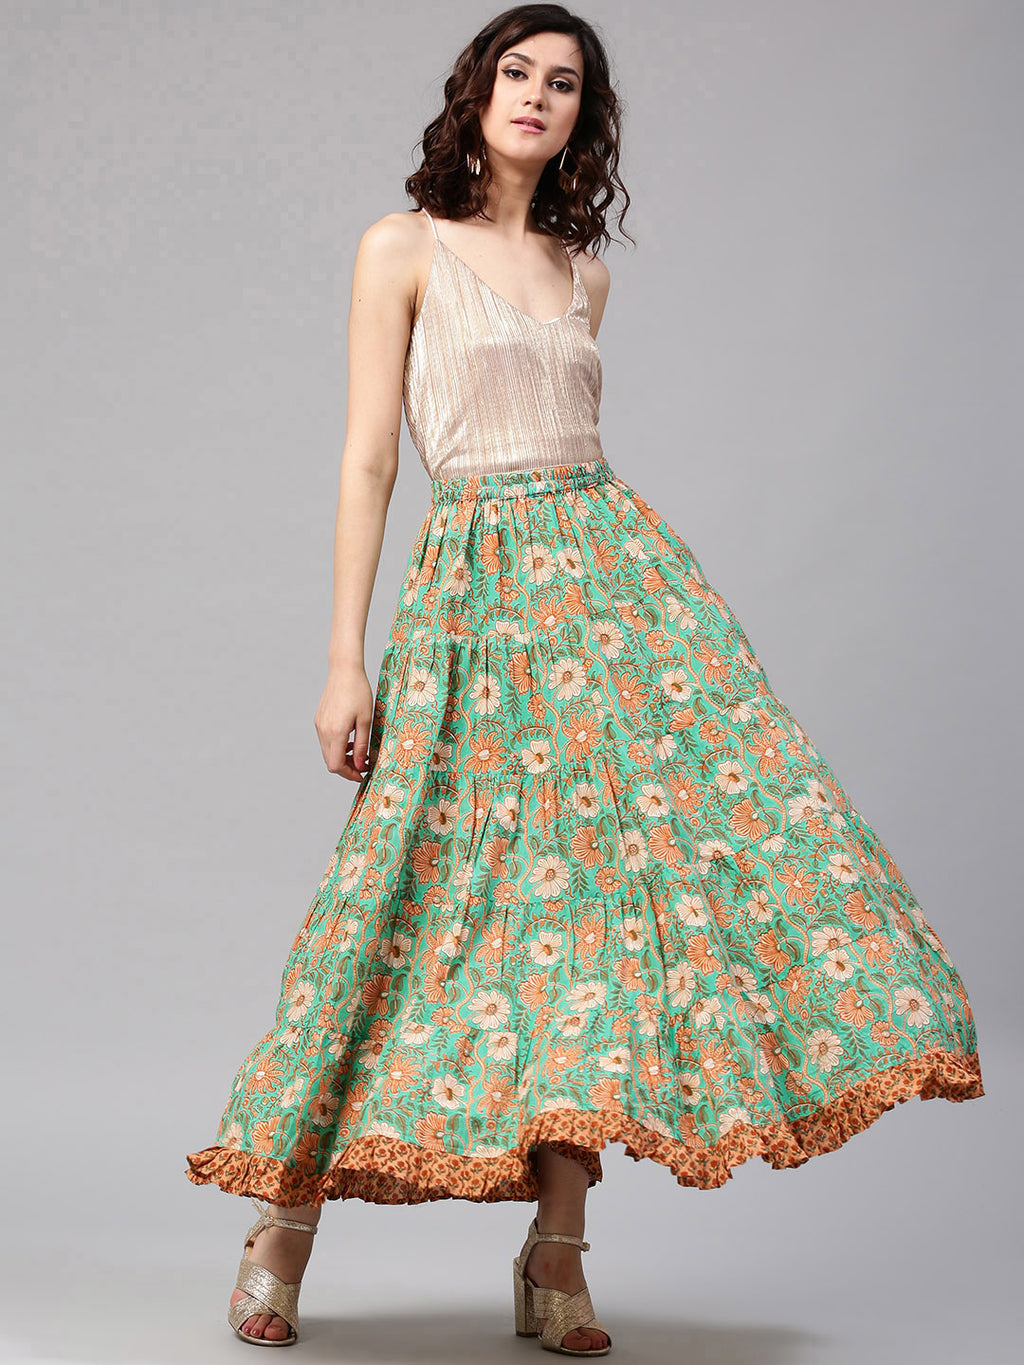 Green Floral Pastel Printed Flared Skirt With Frill Hemline | Znx4ever.com